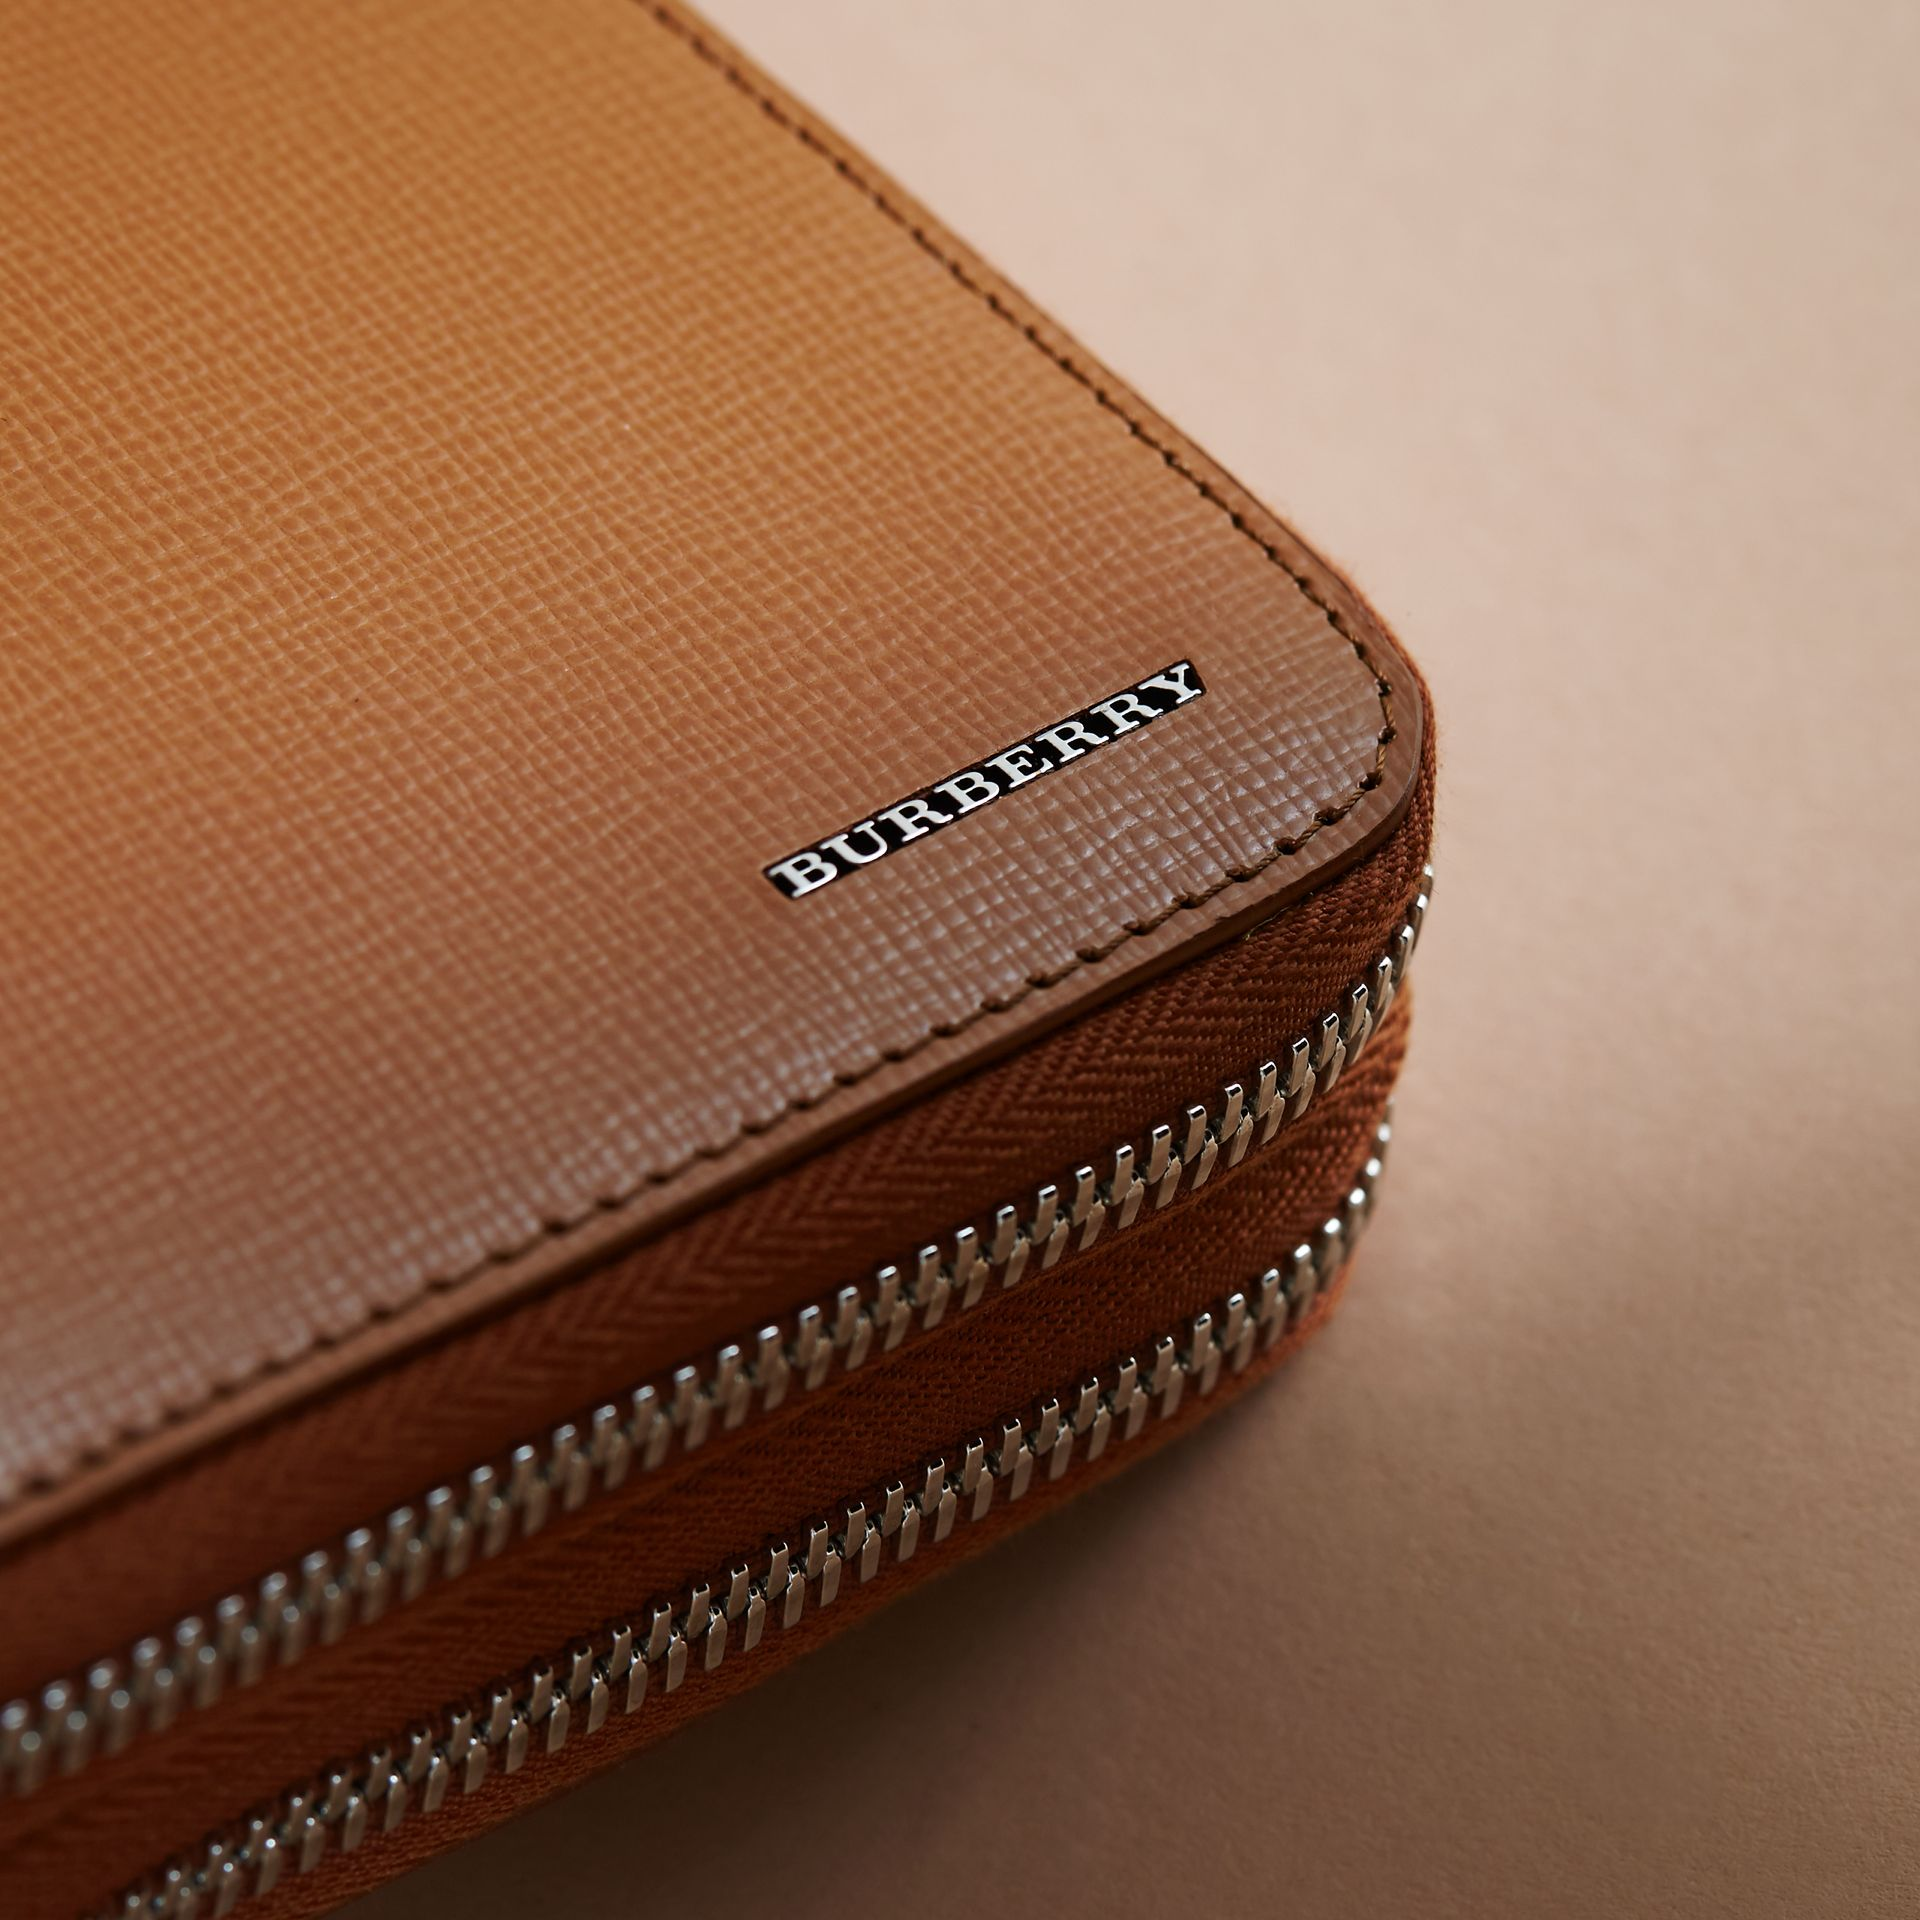 London Leather Travel Wallet in Tan - Men | Burberry - gallery image 2